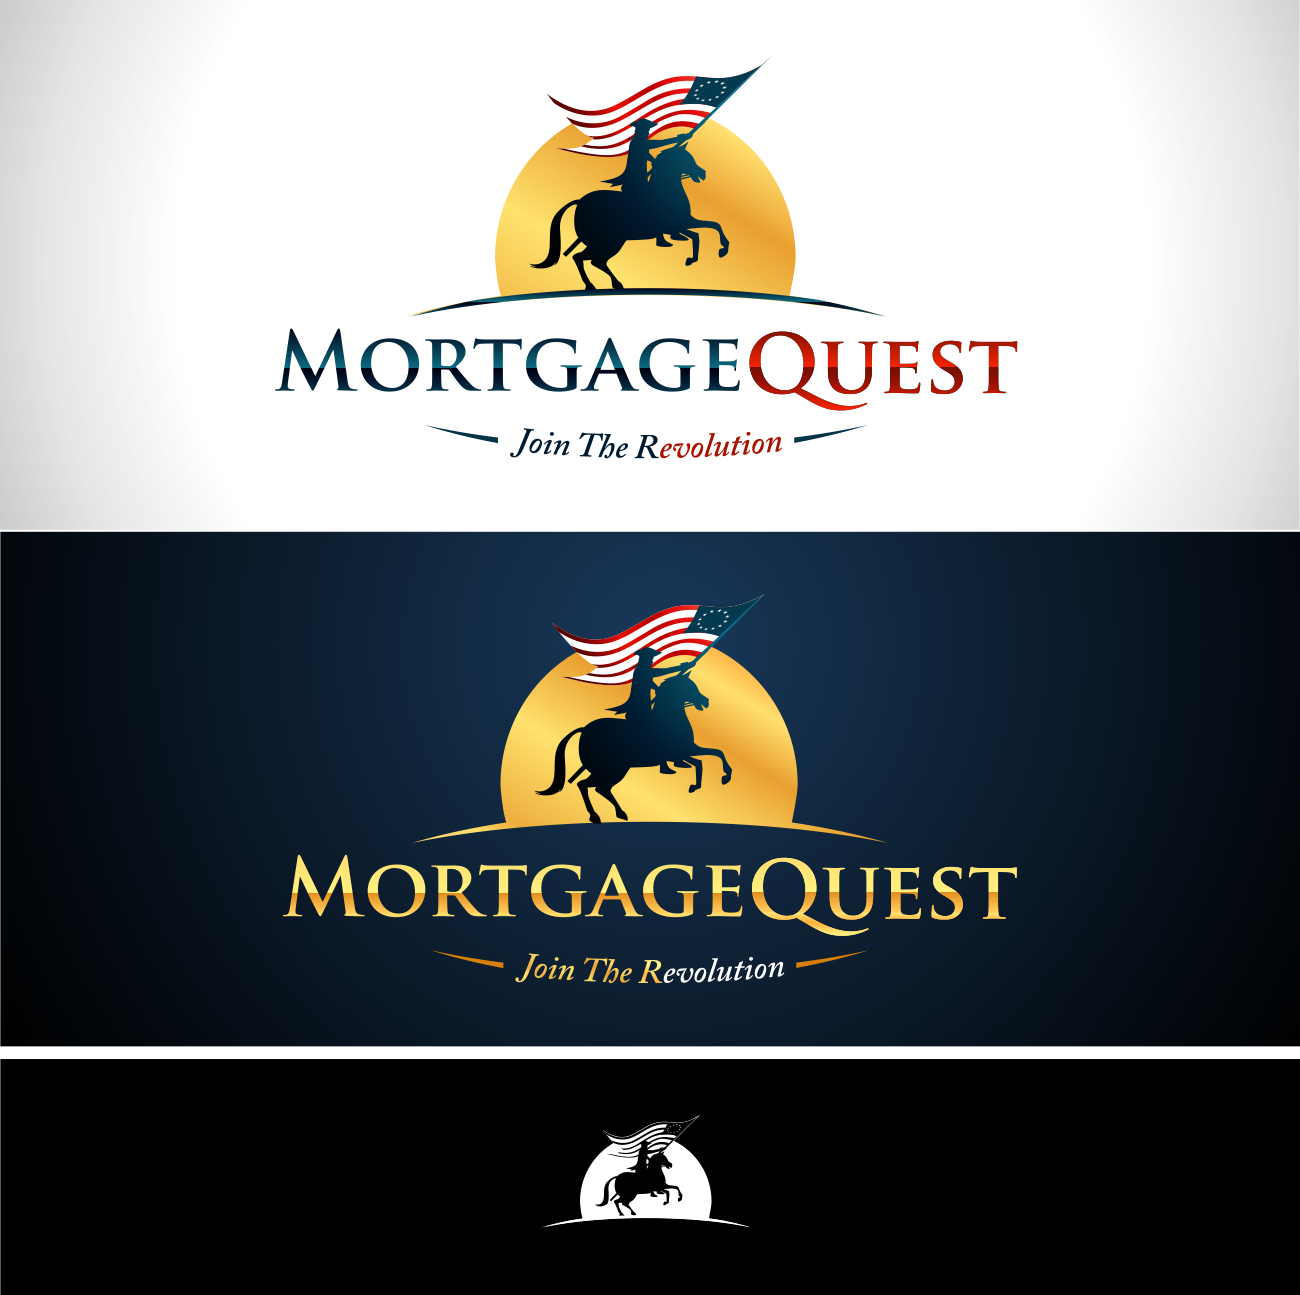 Help MortgageQuest with a unique logo!